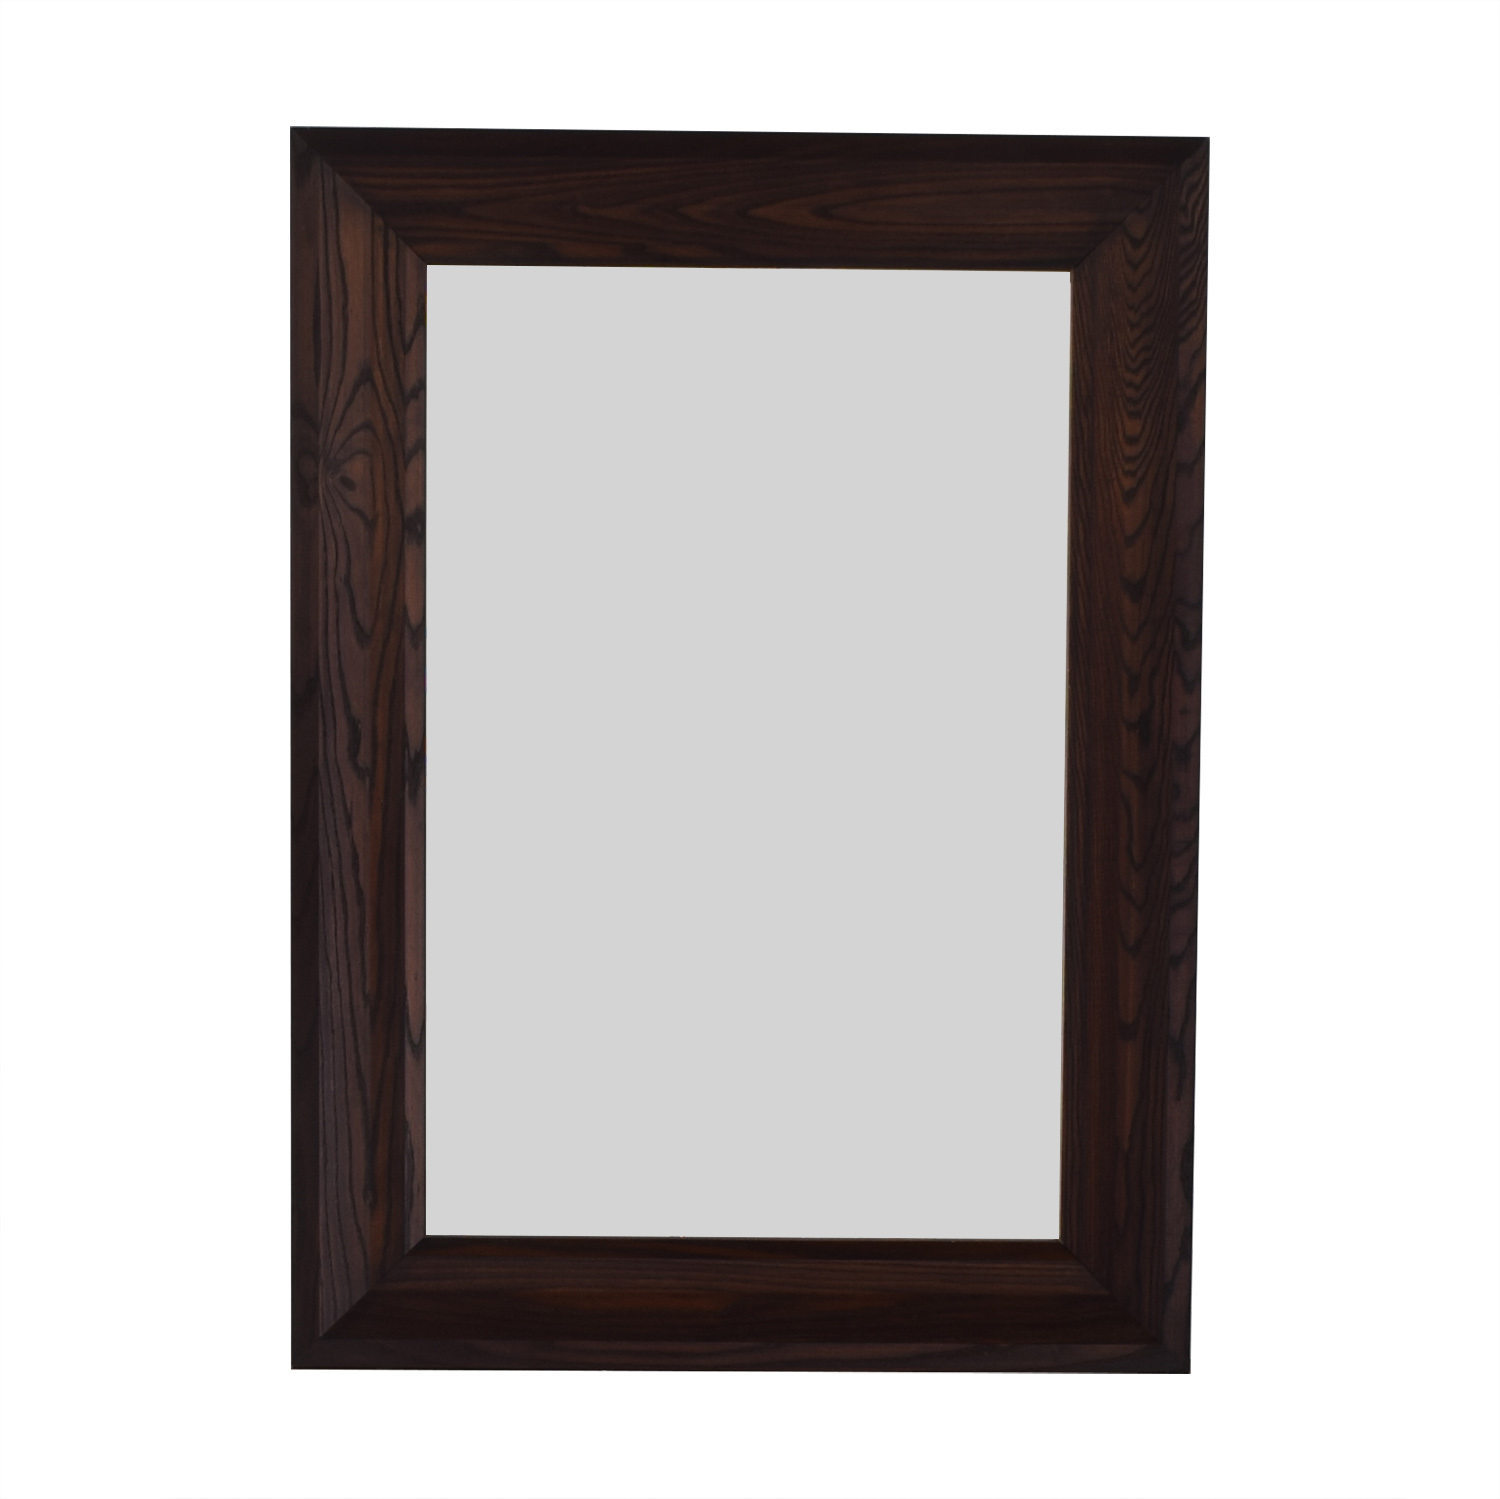 Crate & Barrel Crate & Barrel Oversized Rectangular Mirror